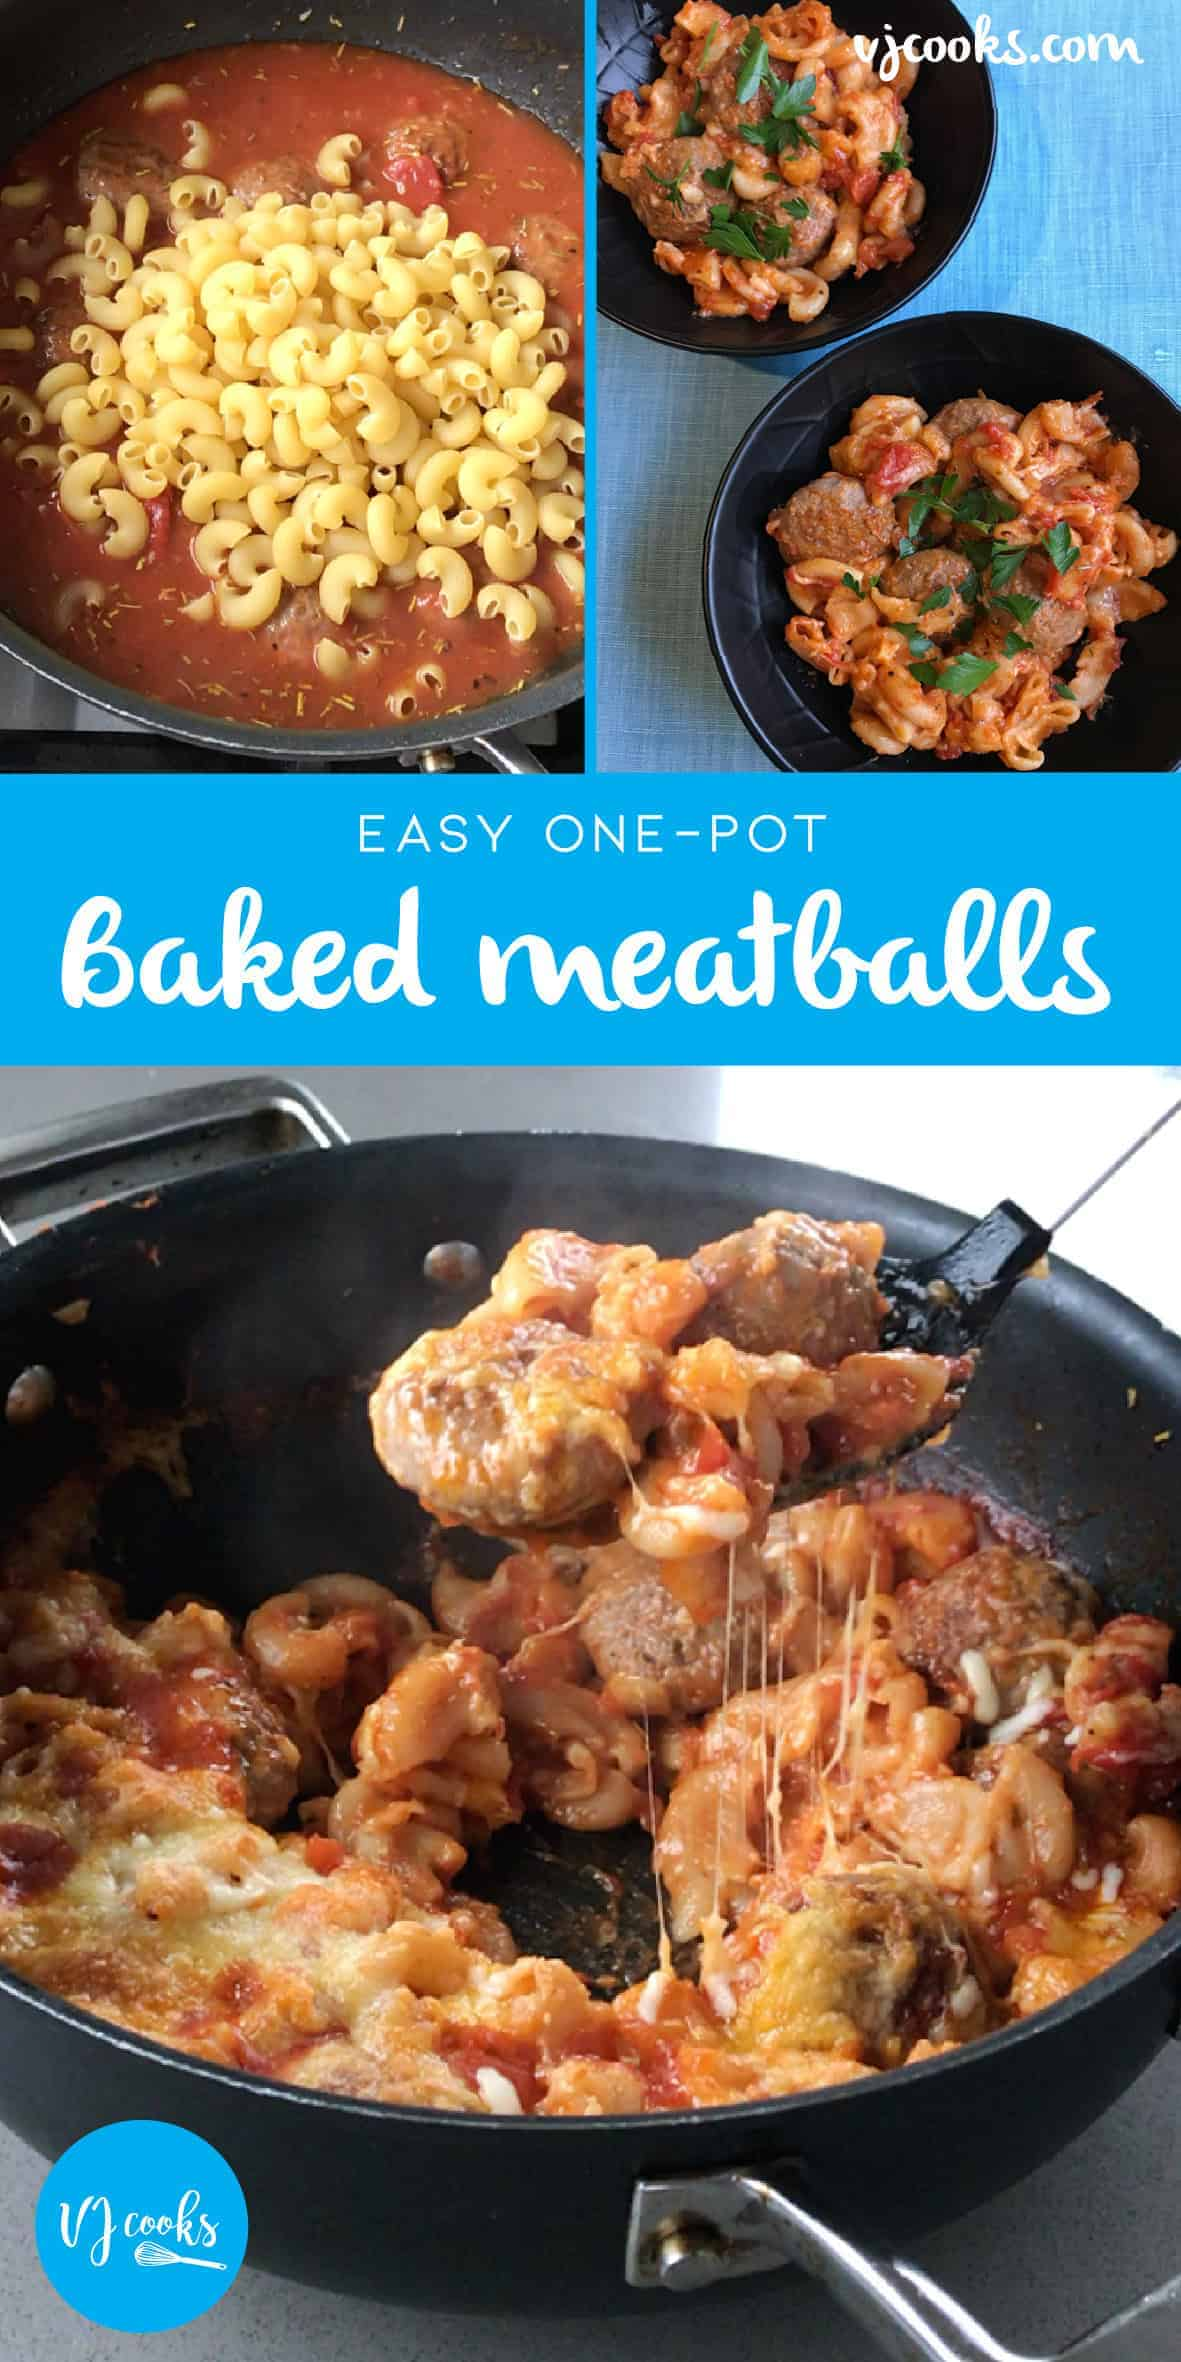 Baked Meatballs easy one-pot recipe by VJ cooks